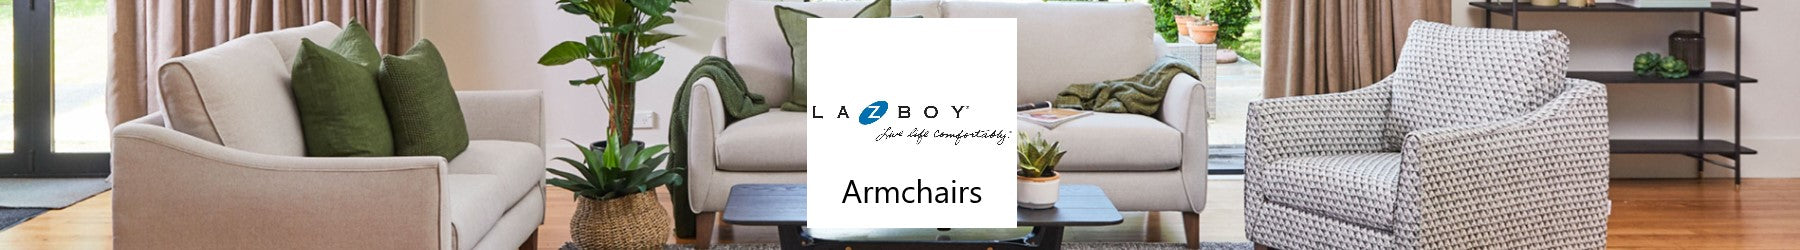 Lazy Boy Chairs